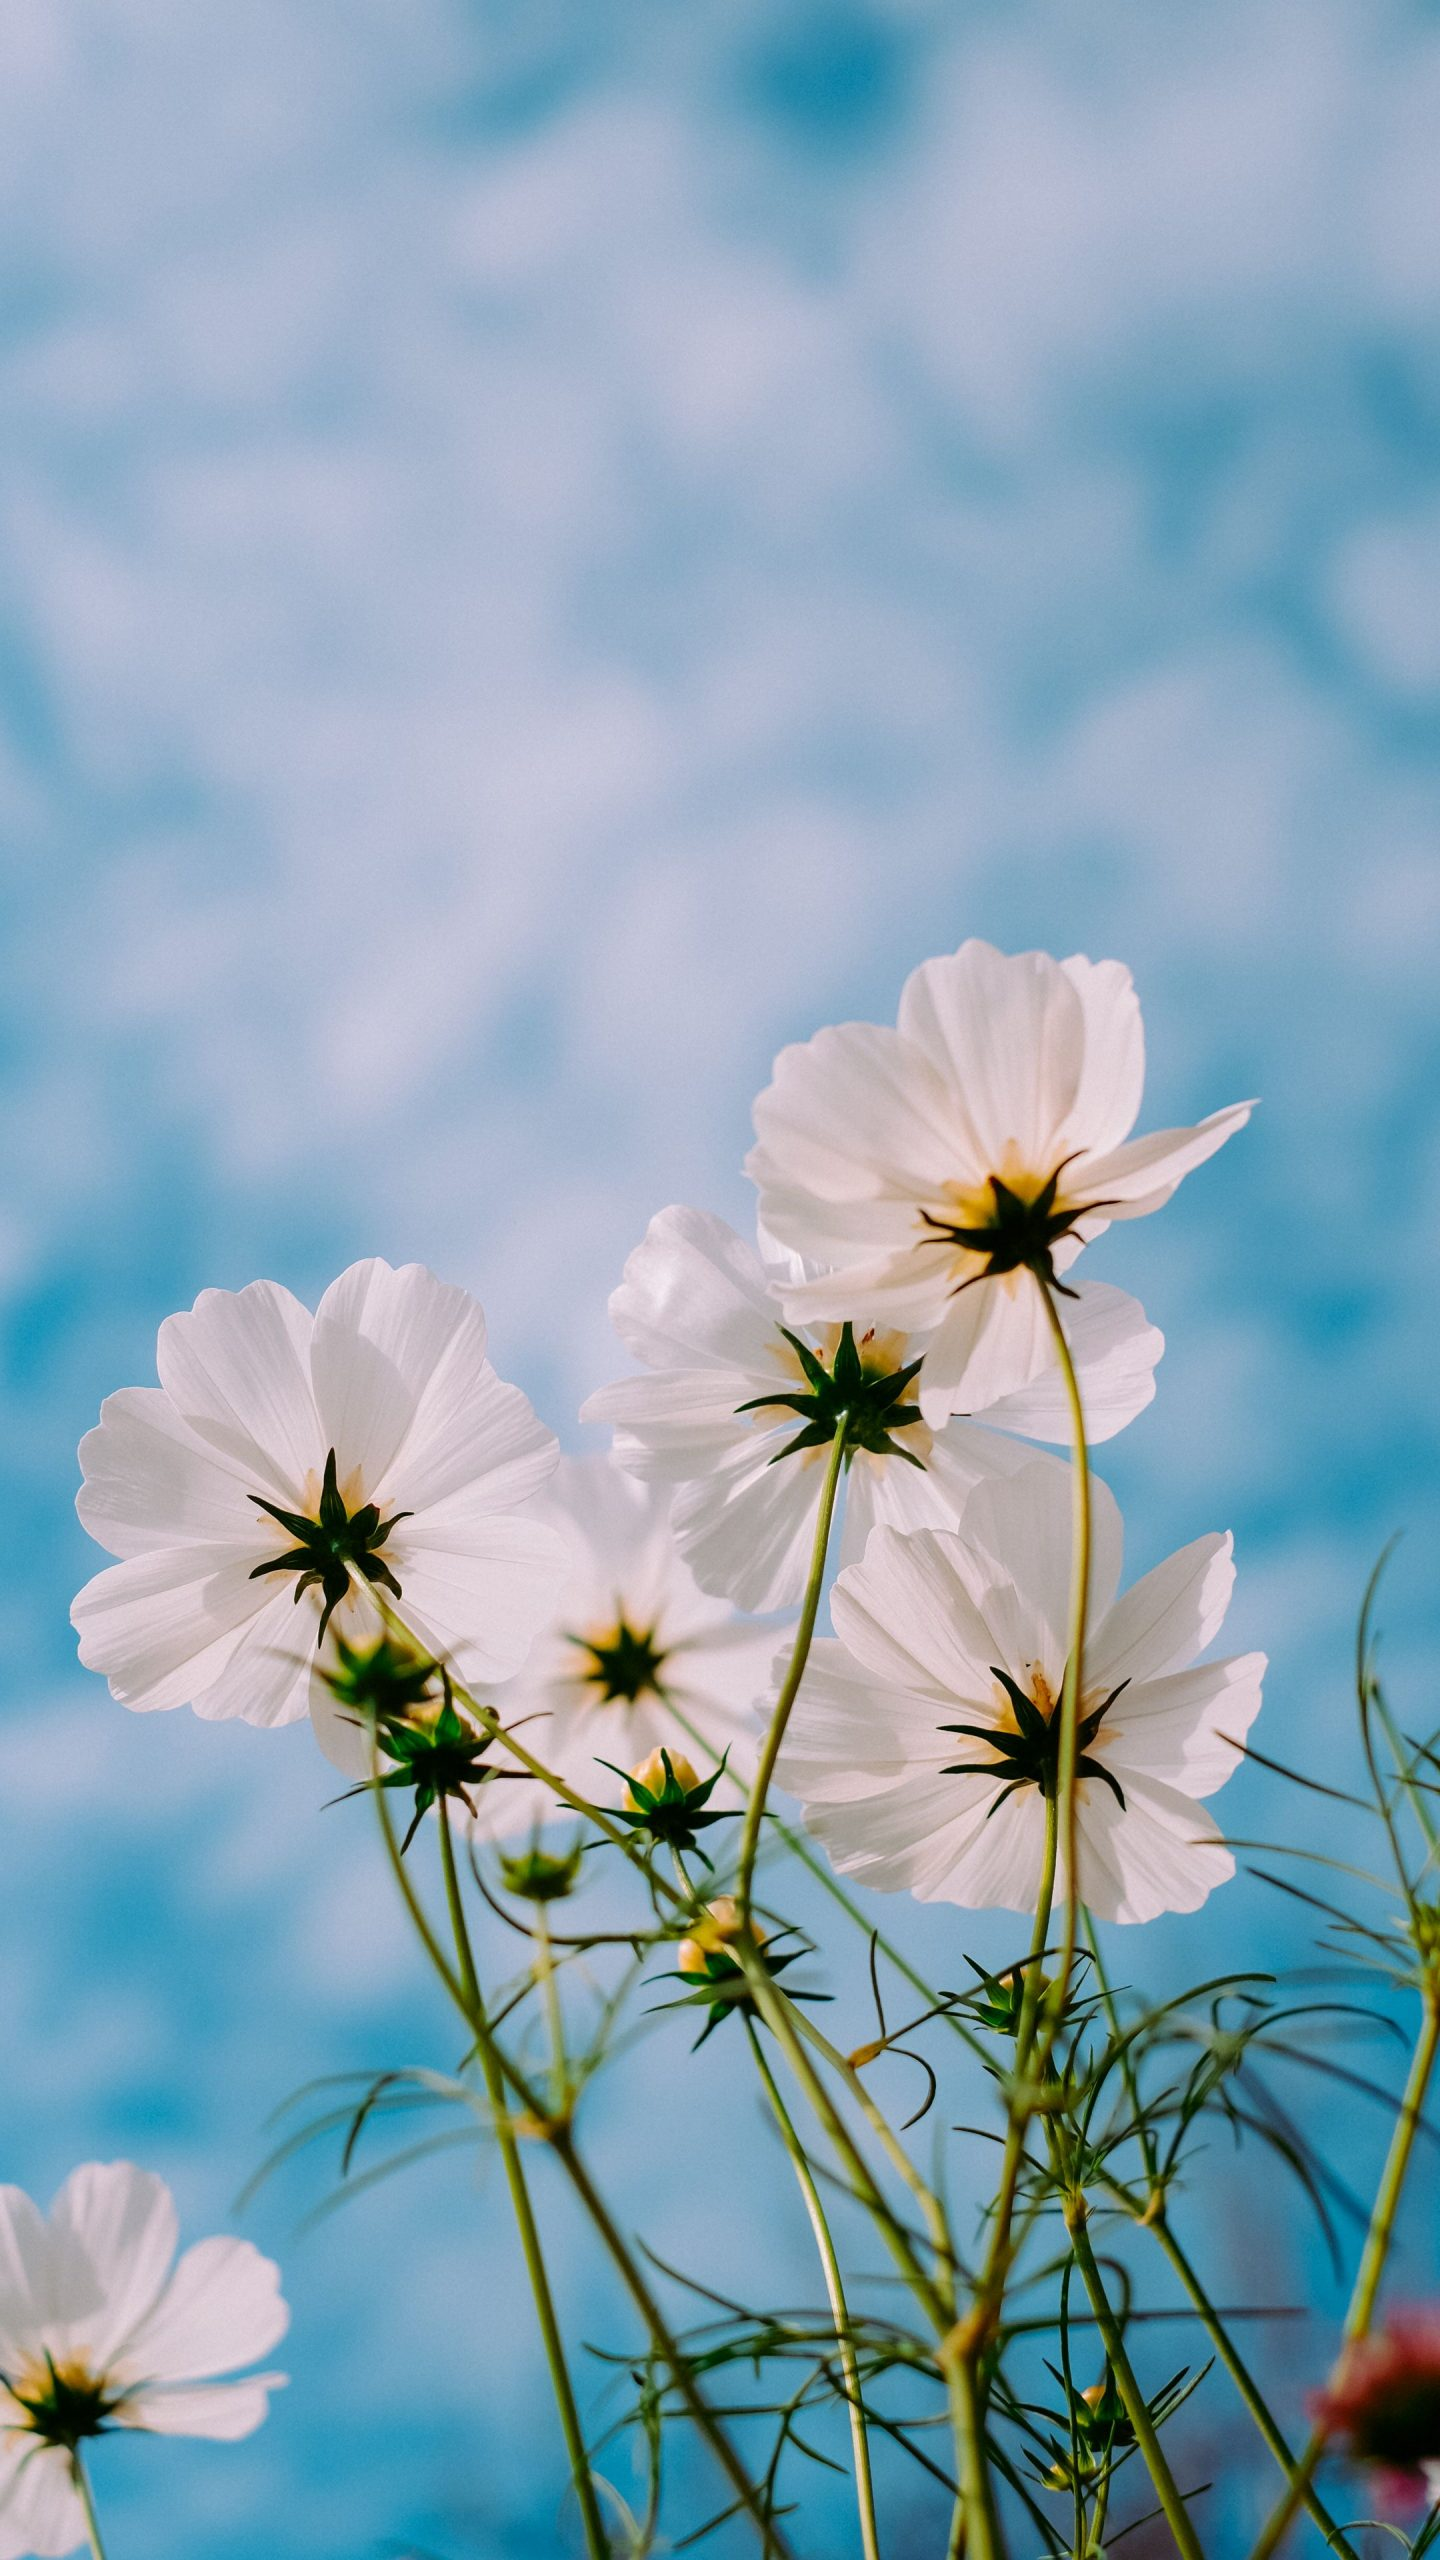 Surprise With 4K Flower Wallpaper For Mobile Android Free Download